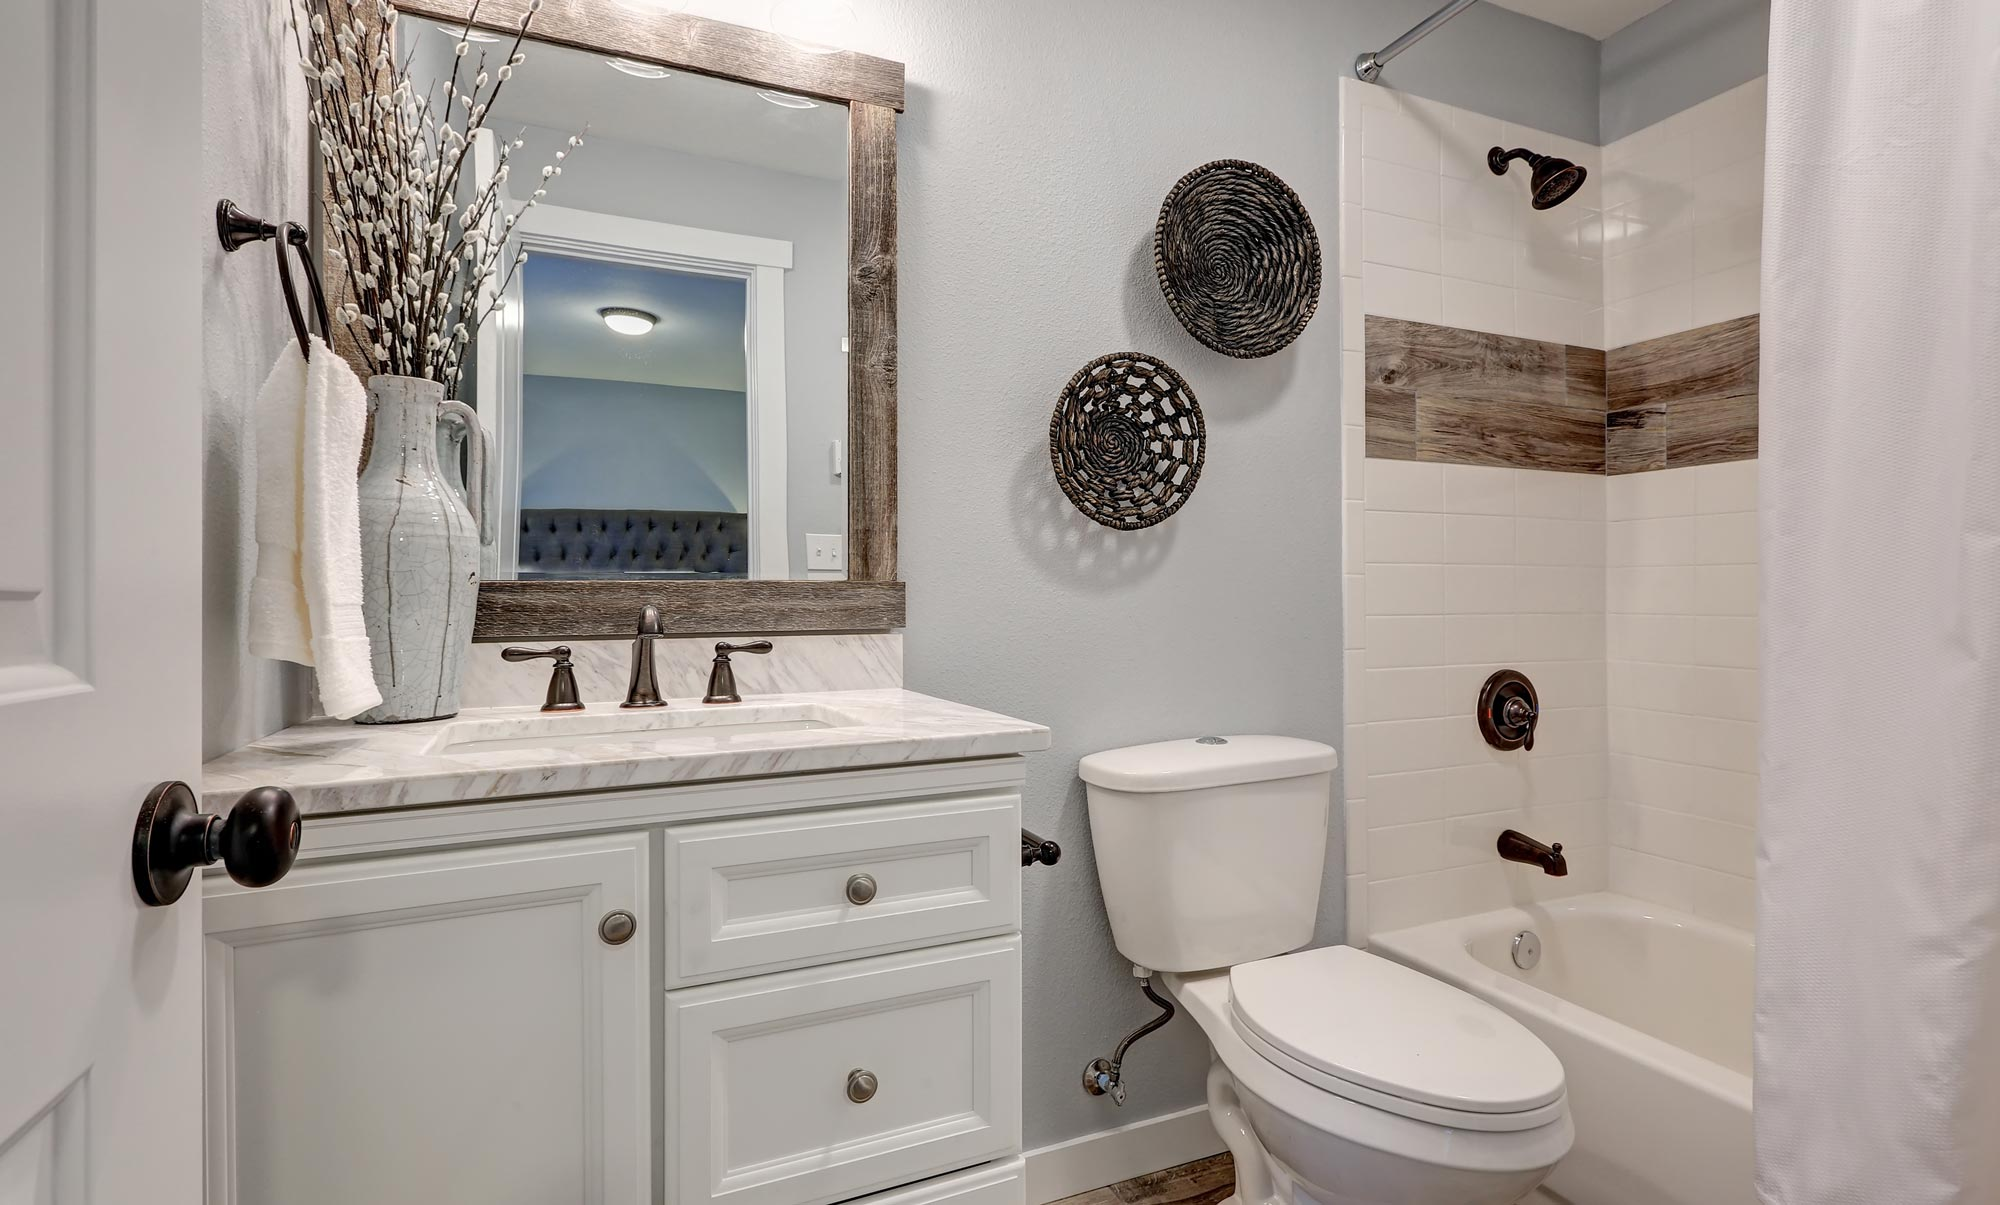 photo of a small bathroom with a lavatory, a mirror and a bath